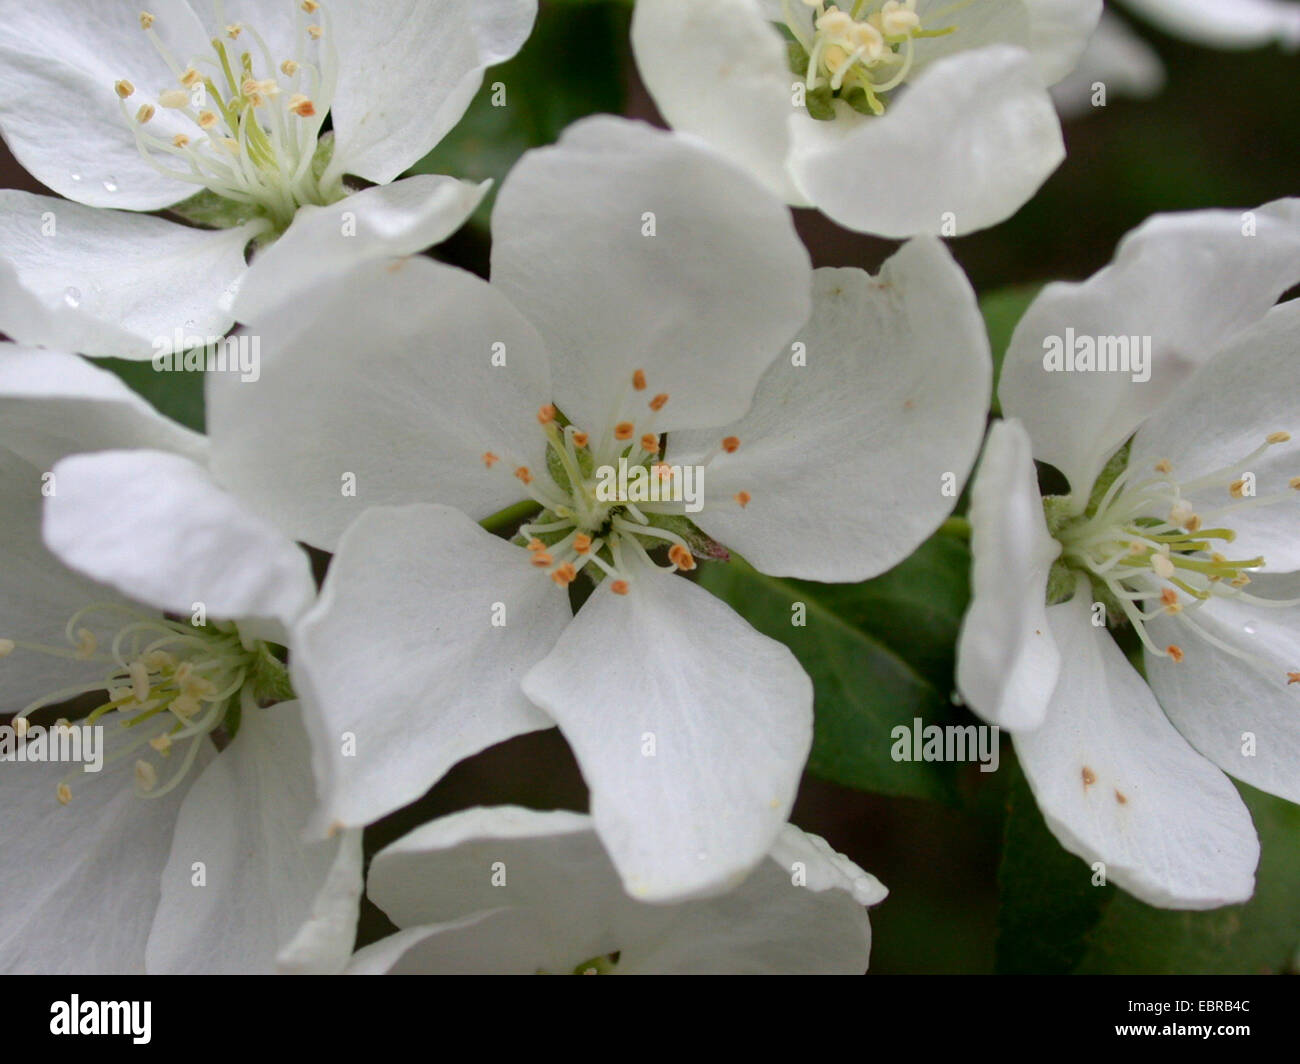 Shrub apple, Nippon Crabapple (Malus brevipes), flowers - Stock Image